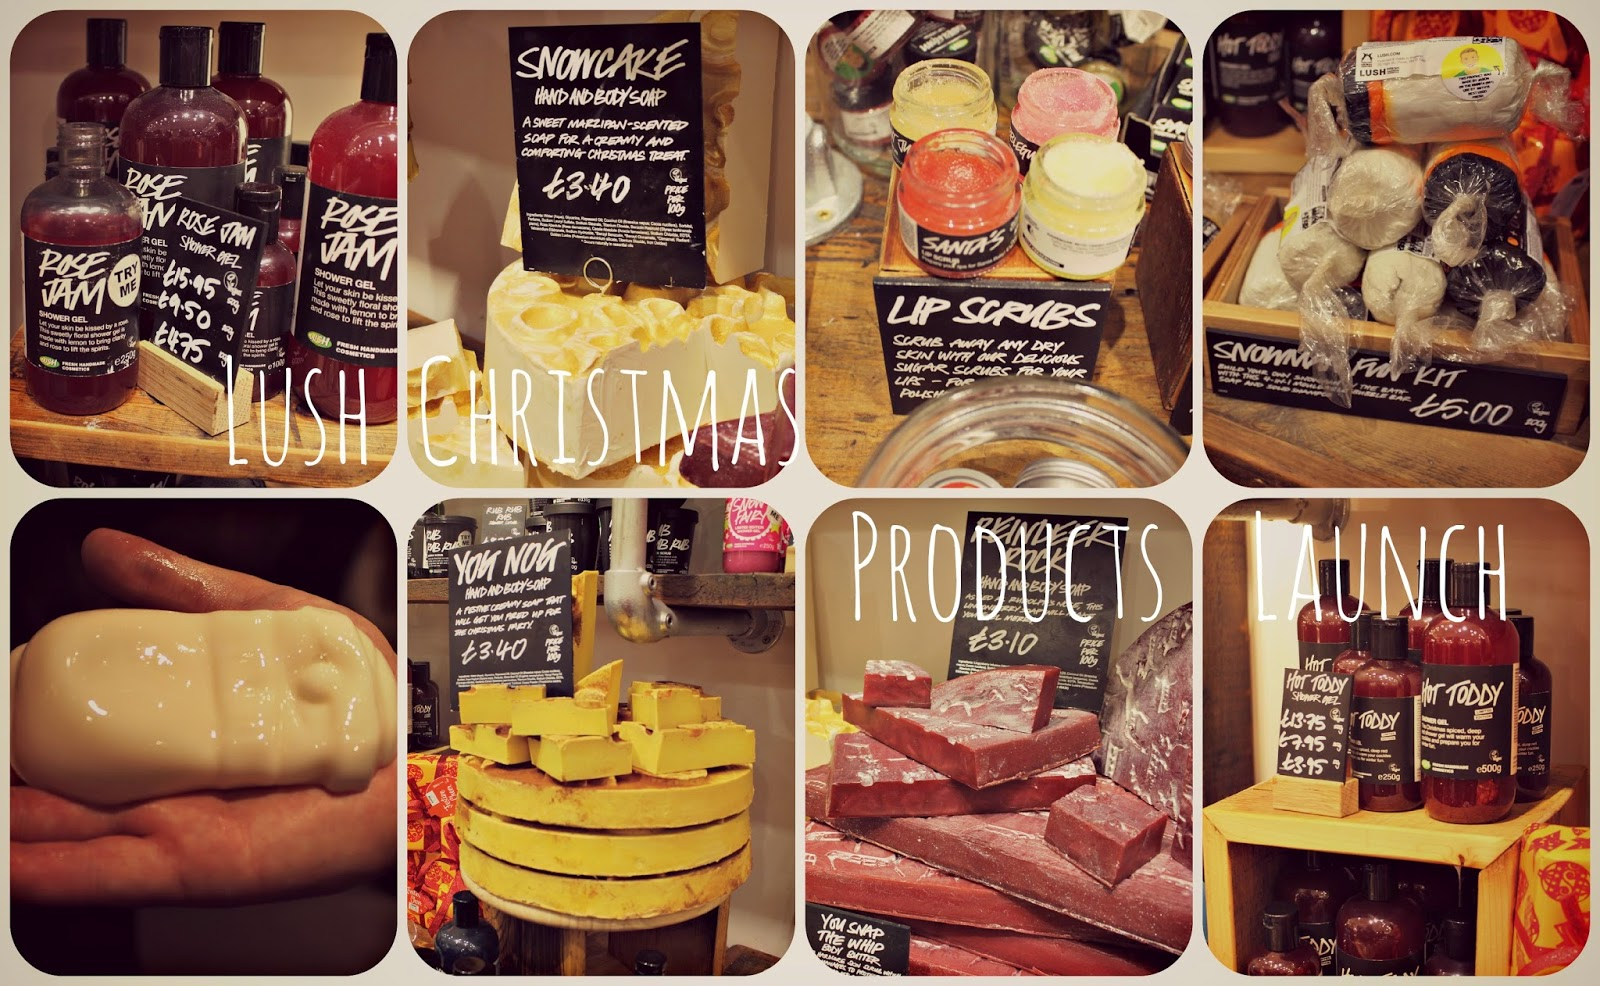 #LushChristmas Launch at Lush Spa Leeds